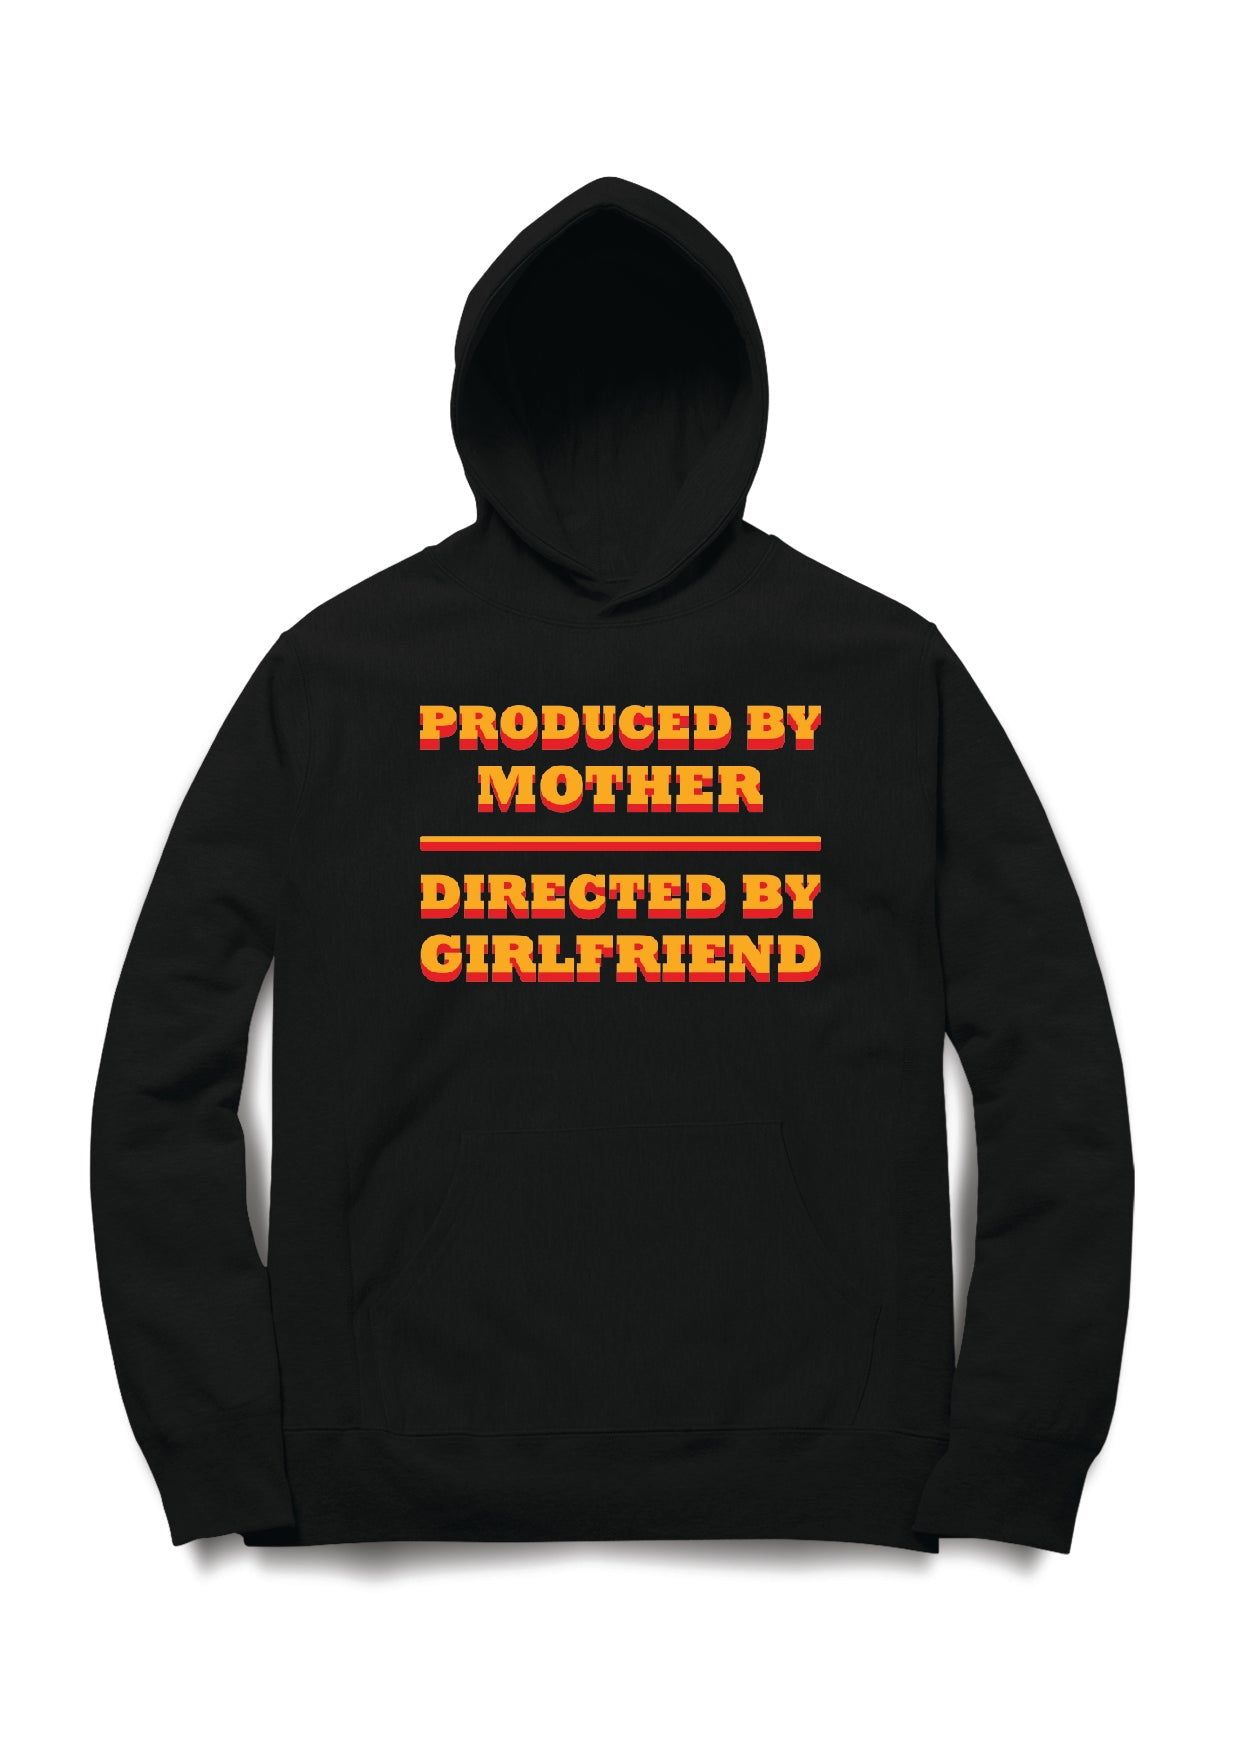 PRODUCED BY MOTHER DIRECTED BY GIRLFRIEND  HOODIE - Almytees